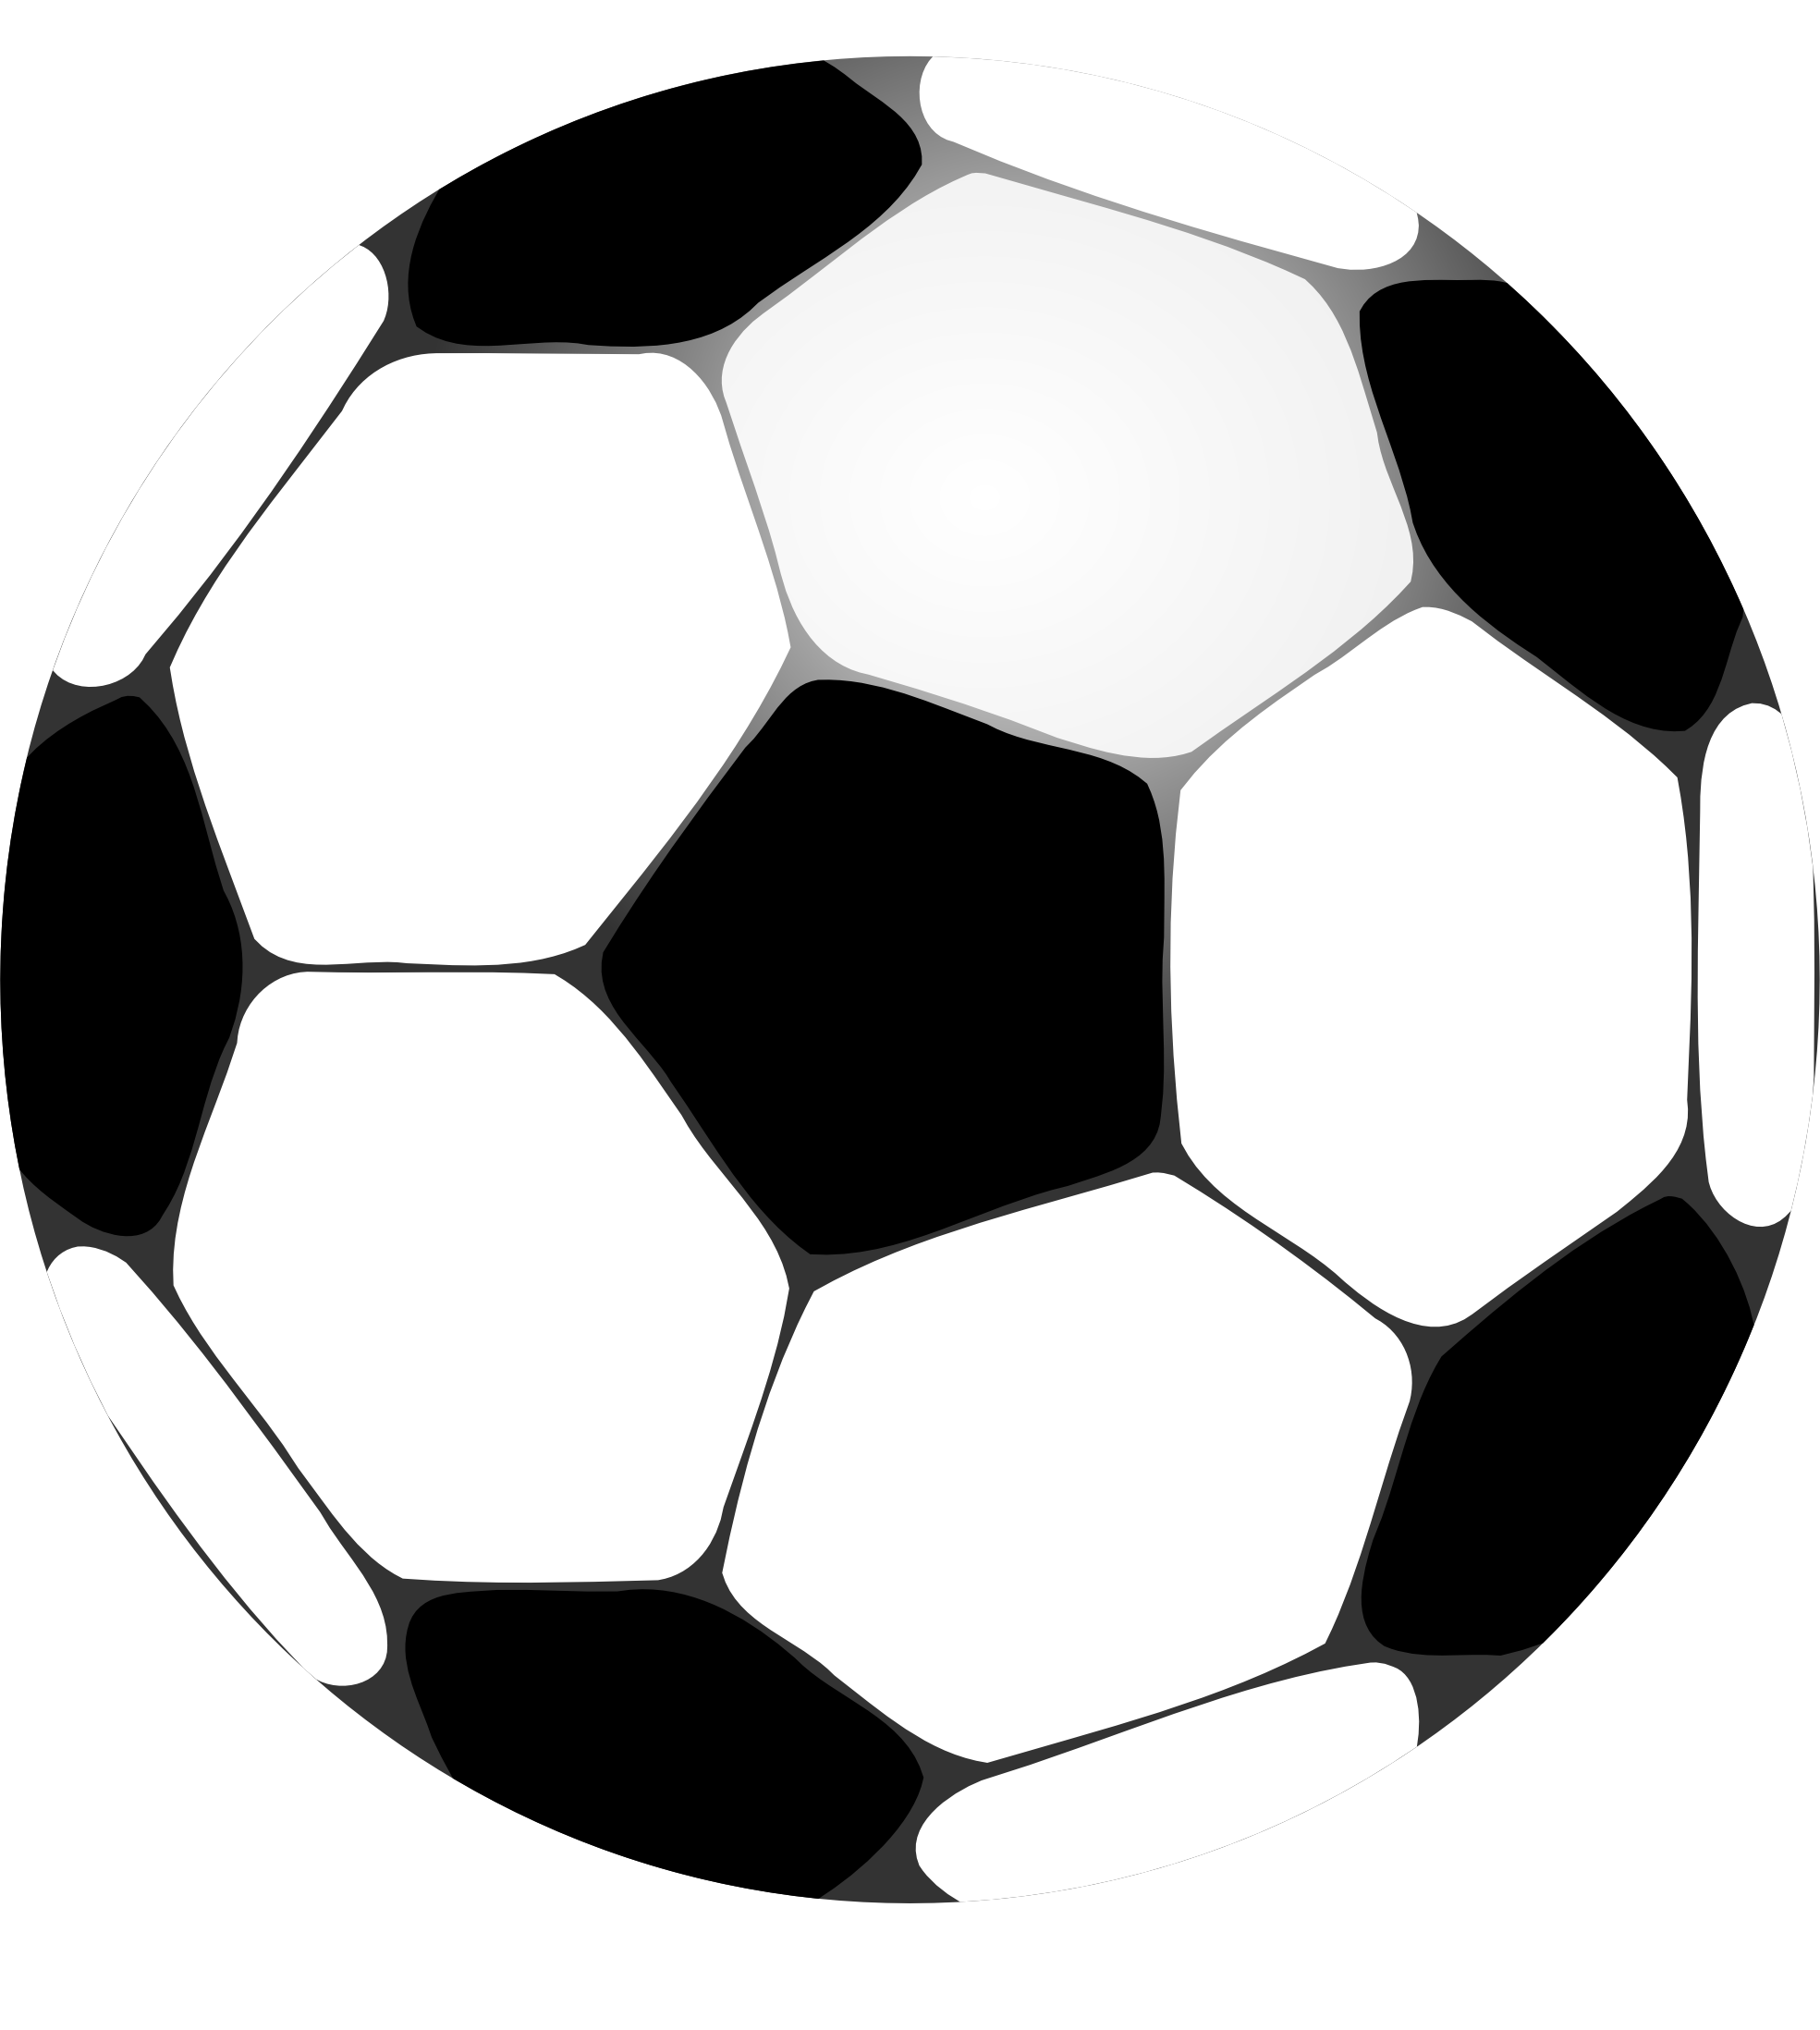 Soccer ball clip art free large images 4.